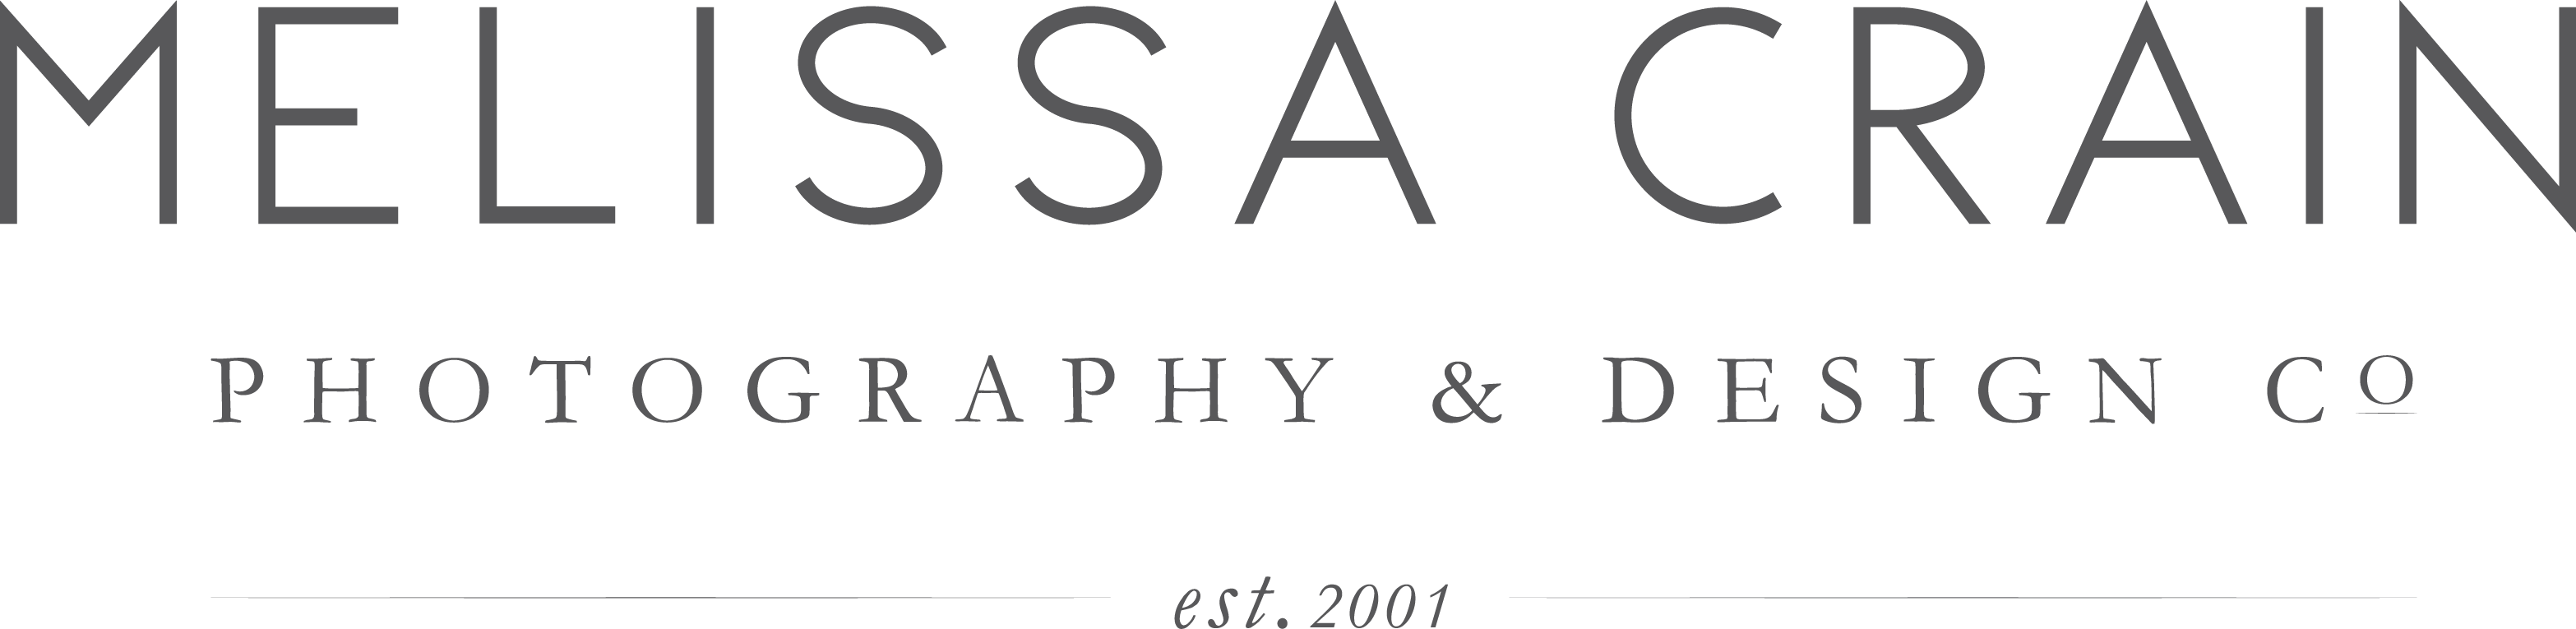 Melissa Crain Photography & Design Co